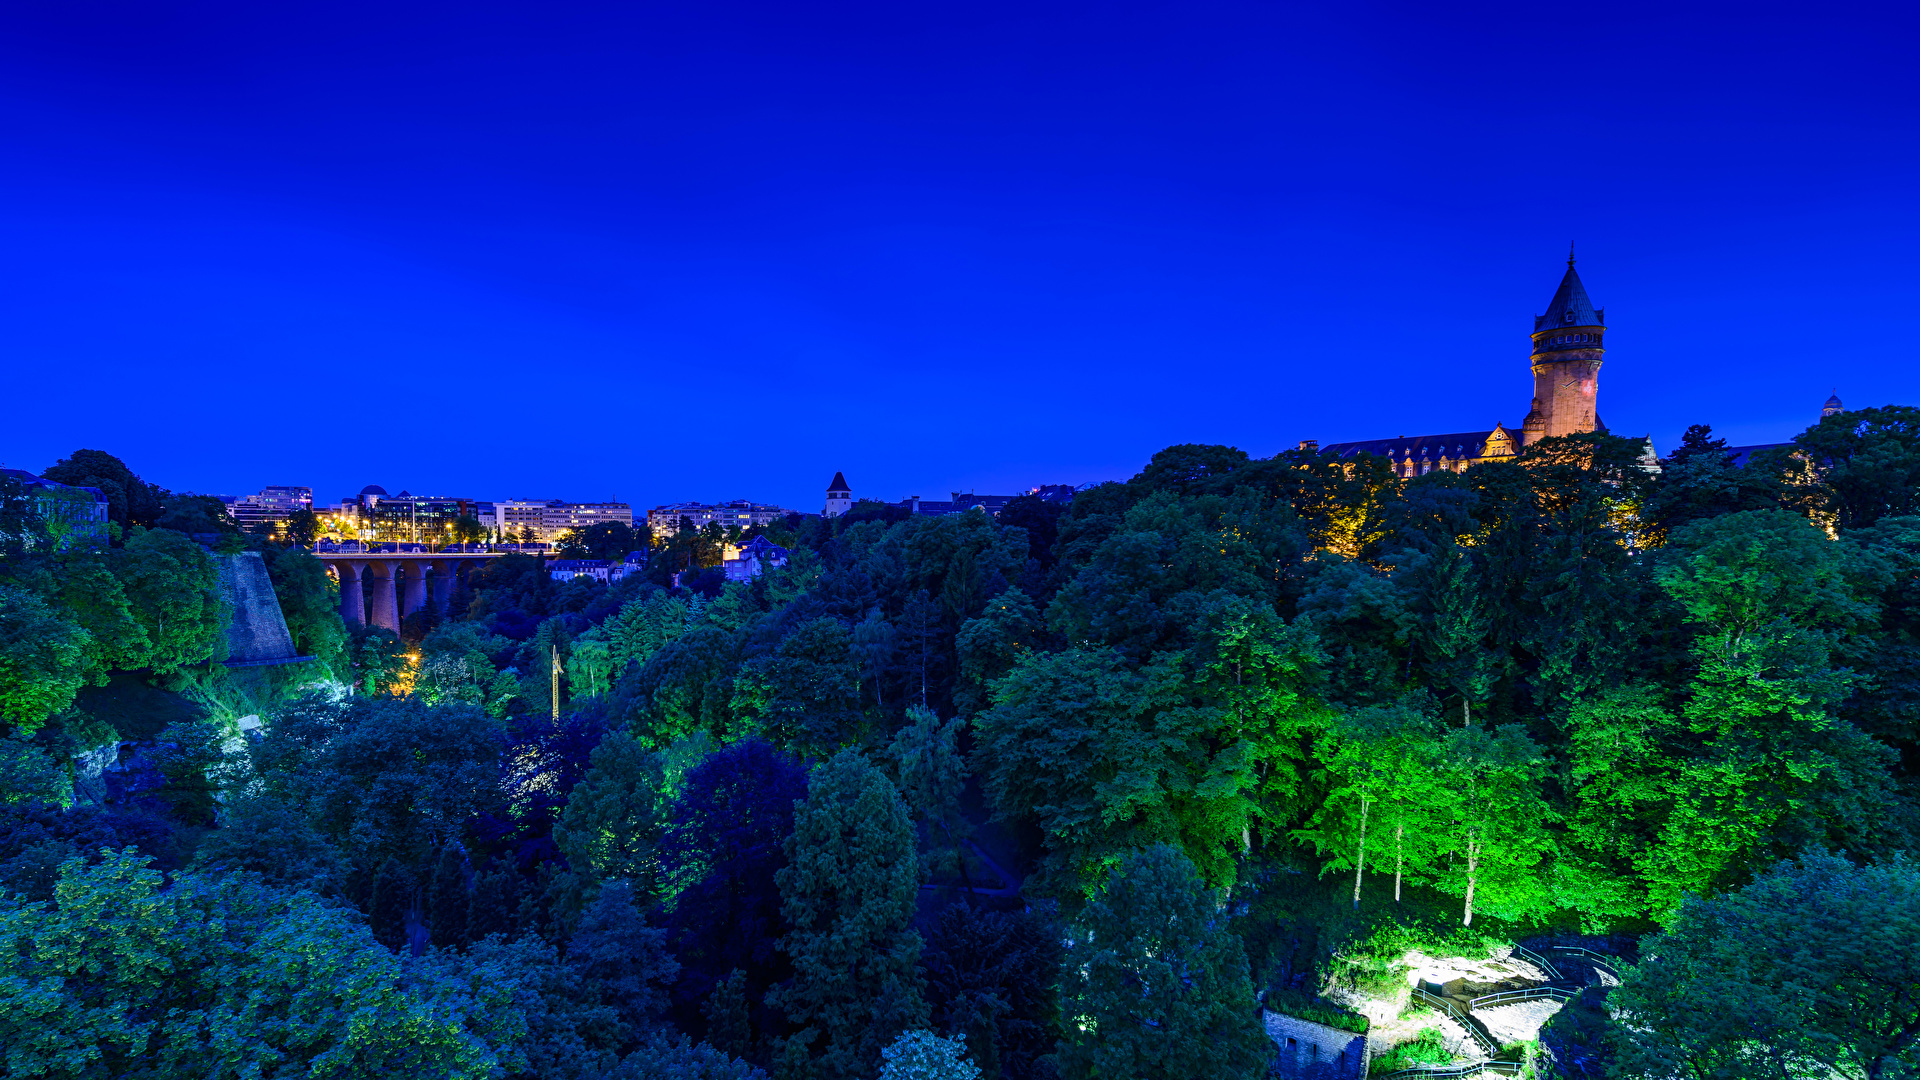 Wallpapers Luxembourg Bridges Castles night time Trees 1920x1080 1920x1080